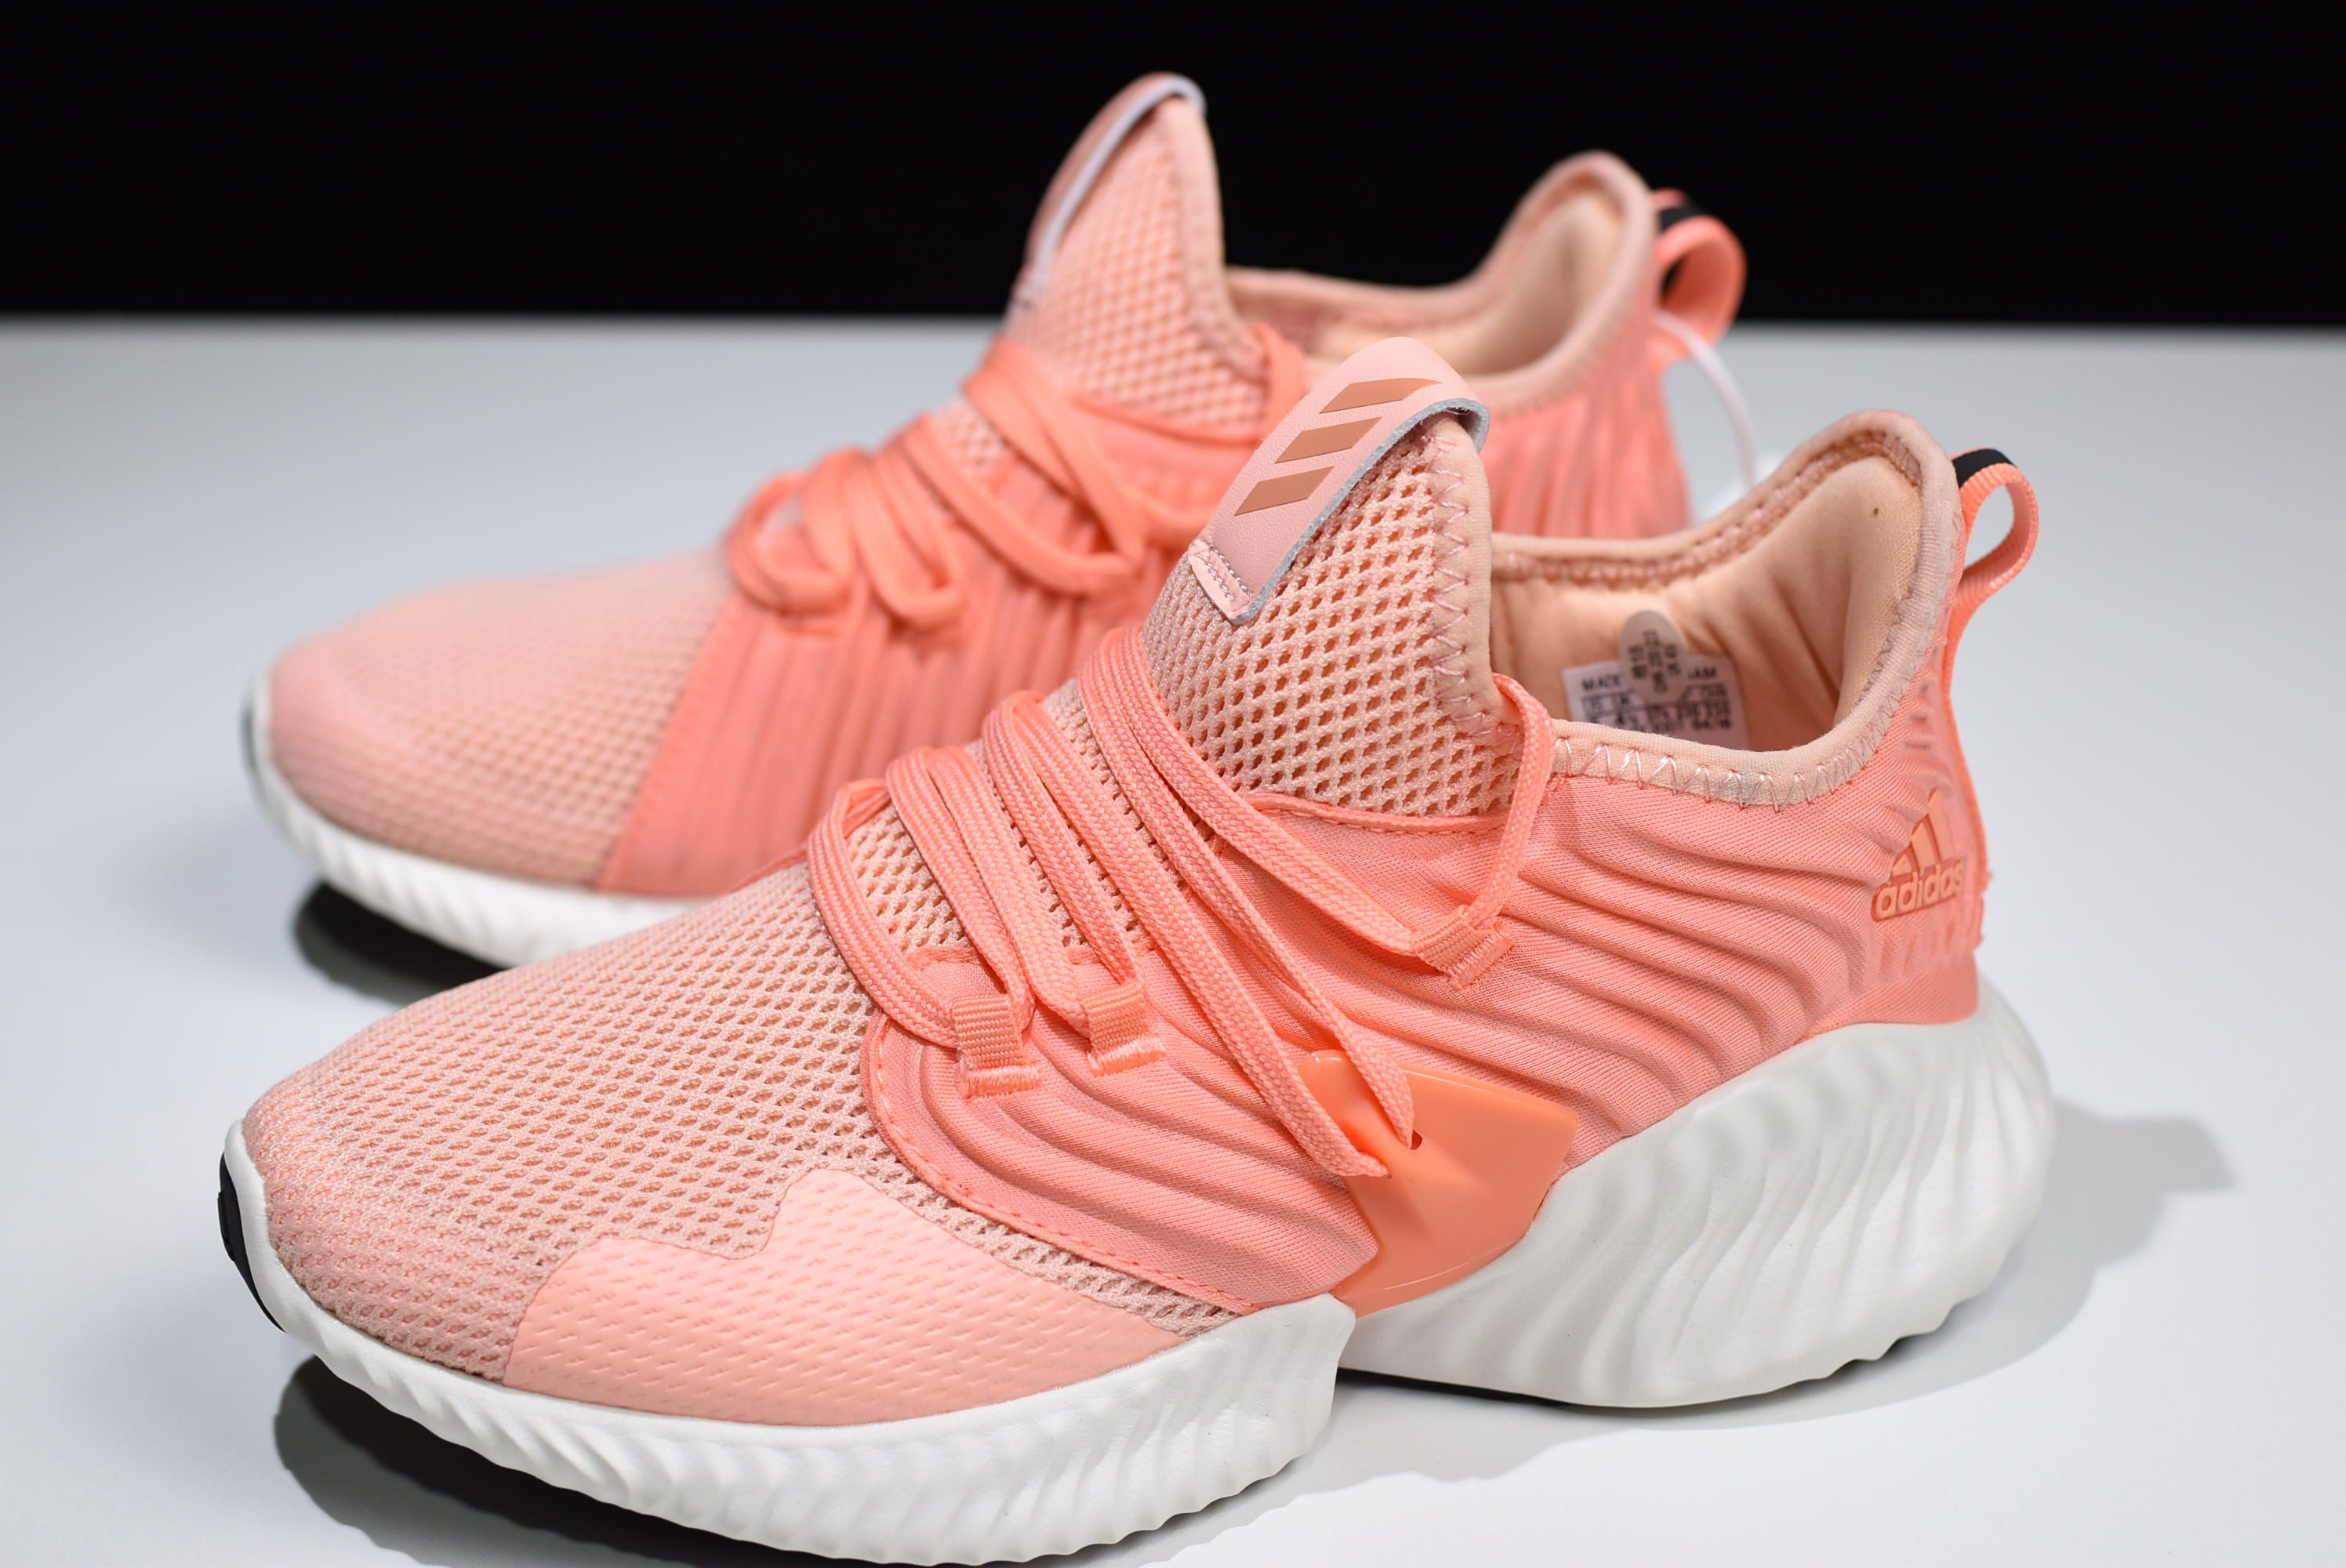 126995cbfd433 Women s adidas Alphabounce Instinct CC W Coral Pink White D97284 ...